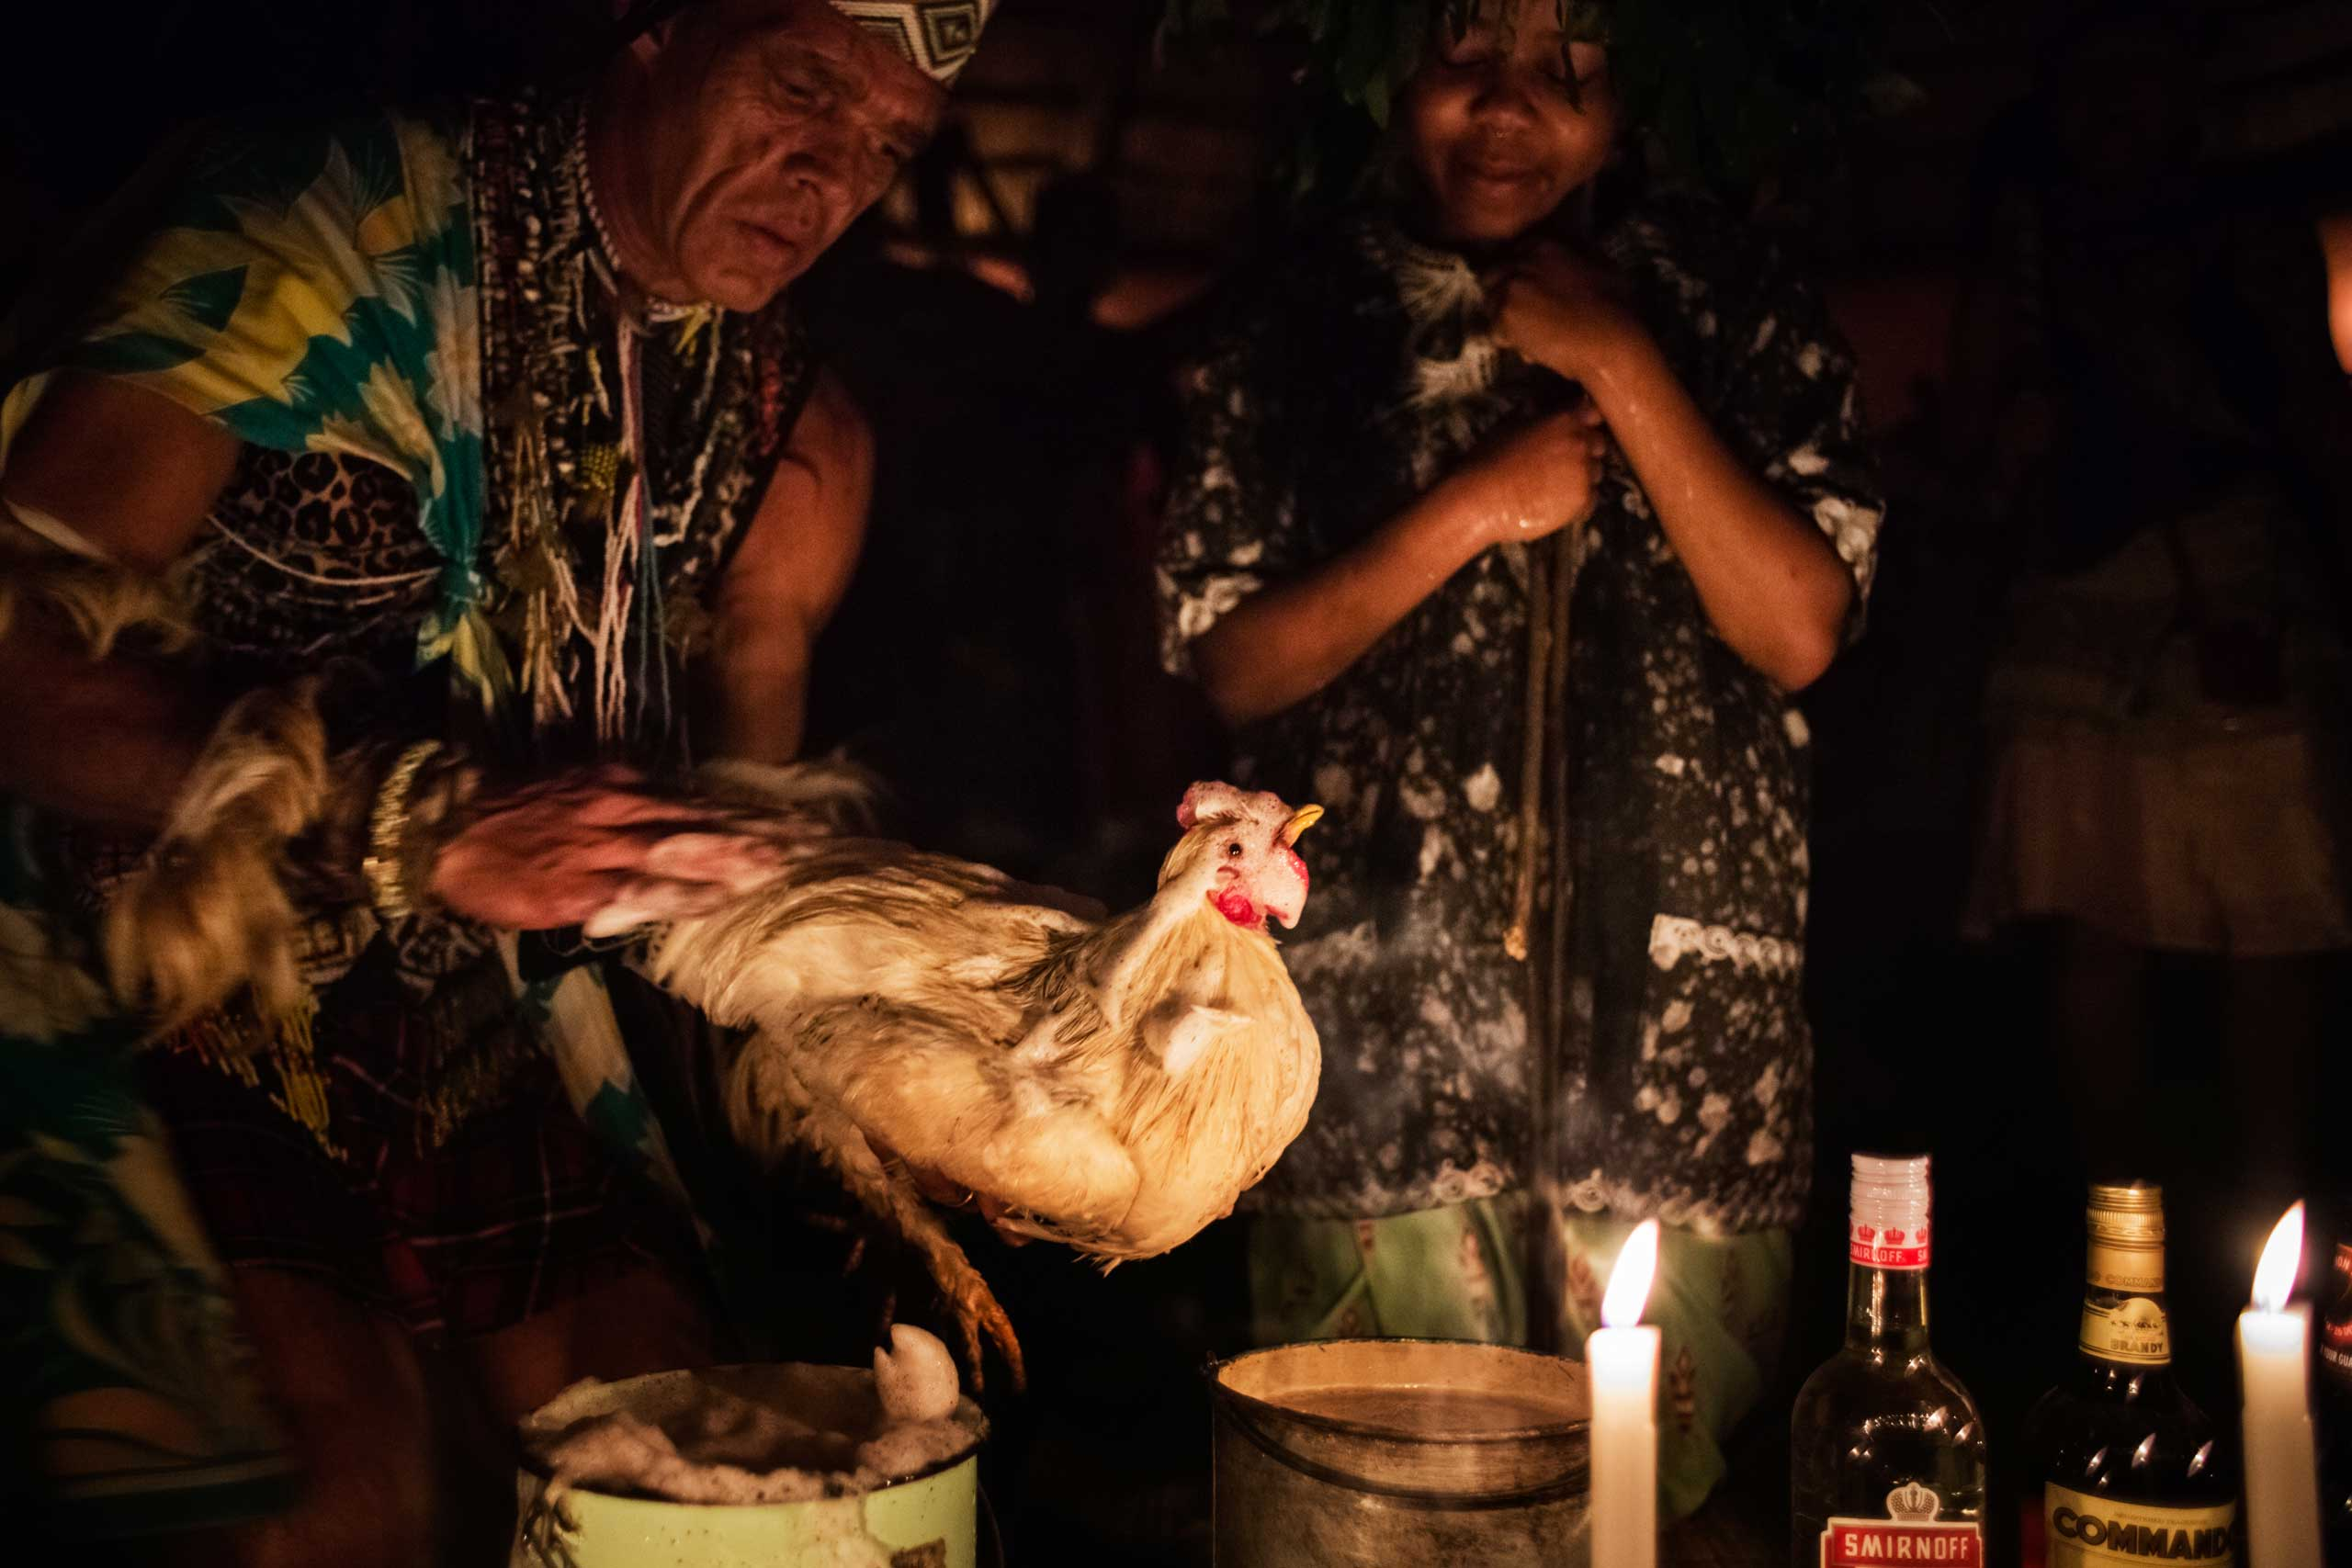 During Gugulethu Khumalo's 'ingenisa' her teacher Chris Ntombemhlophe Reid anoints a chicken with foam on Nov. 28, 2014 in Mdakane, Lusikisiki District, South Africa.